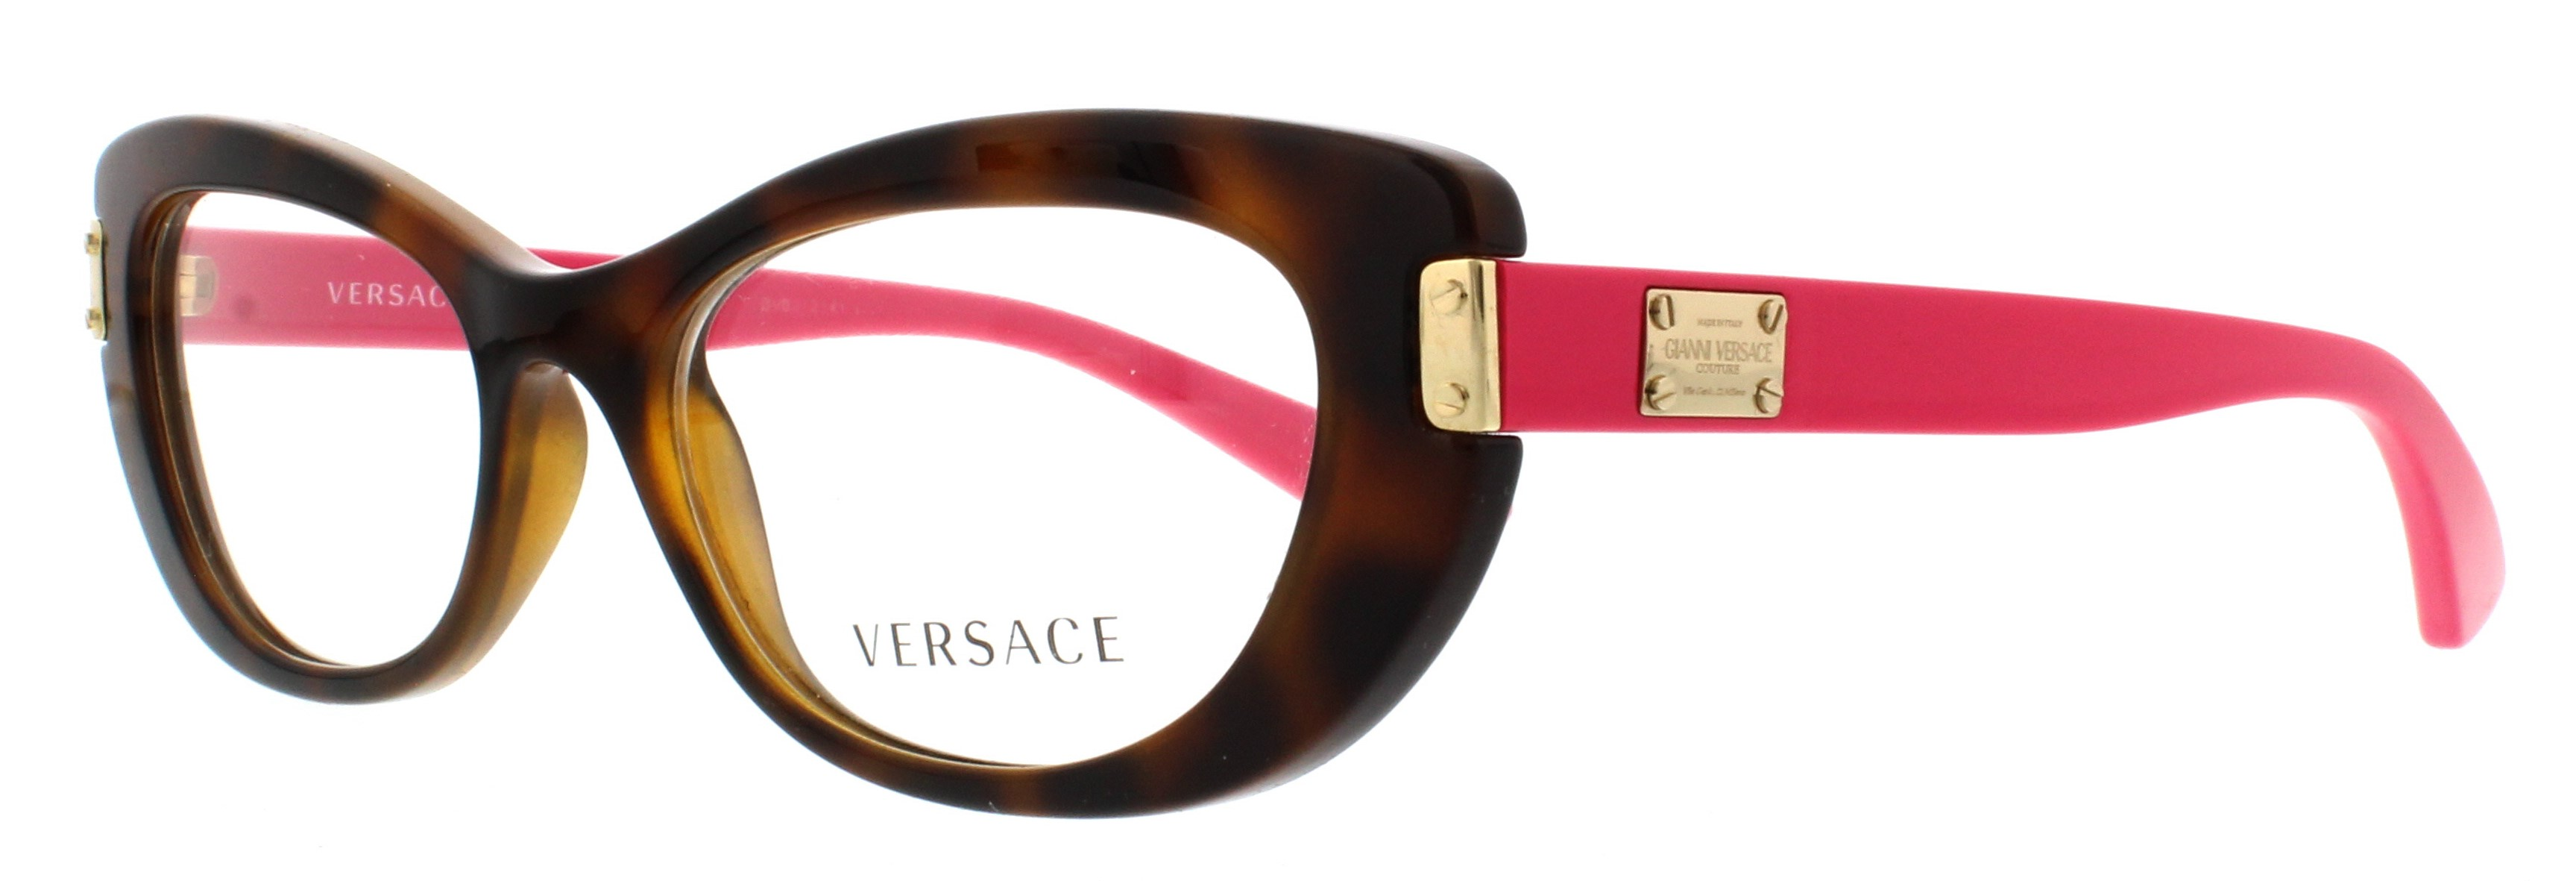 Picture of Versace VE3223